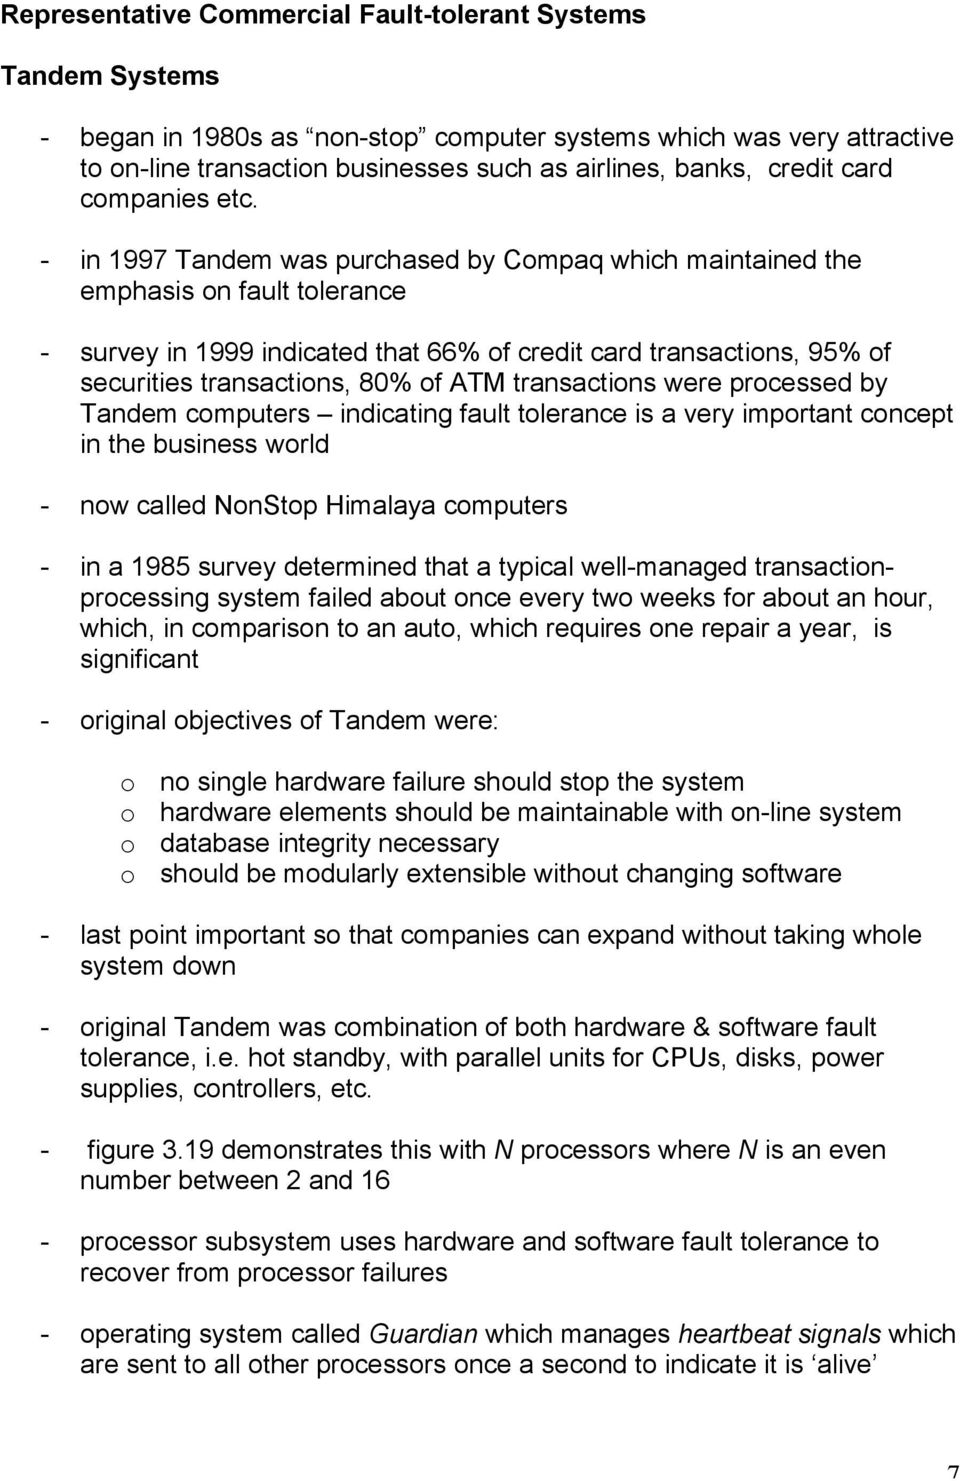 - in 1997 Tandem was purchased by Compaq which maintained the emphasis on fault tolerance - survey in 1999 indicated that 66% of credit card transactions, 95% of securities transactions, 80% of ATM